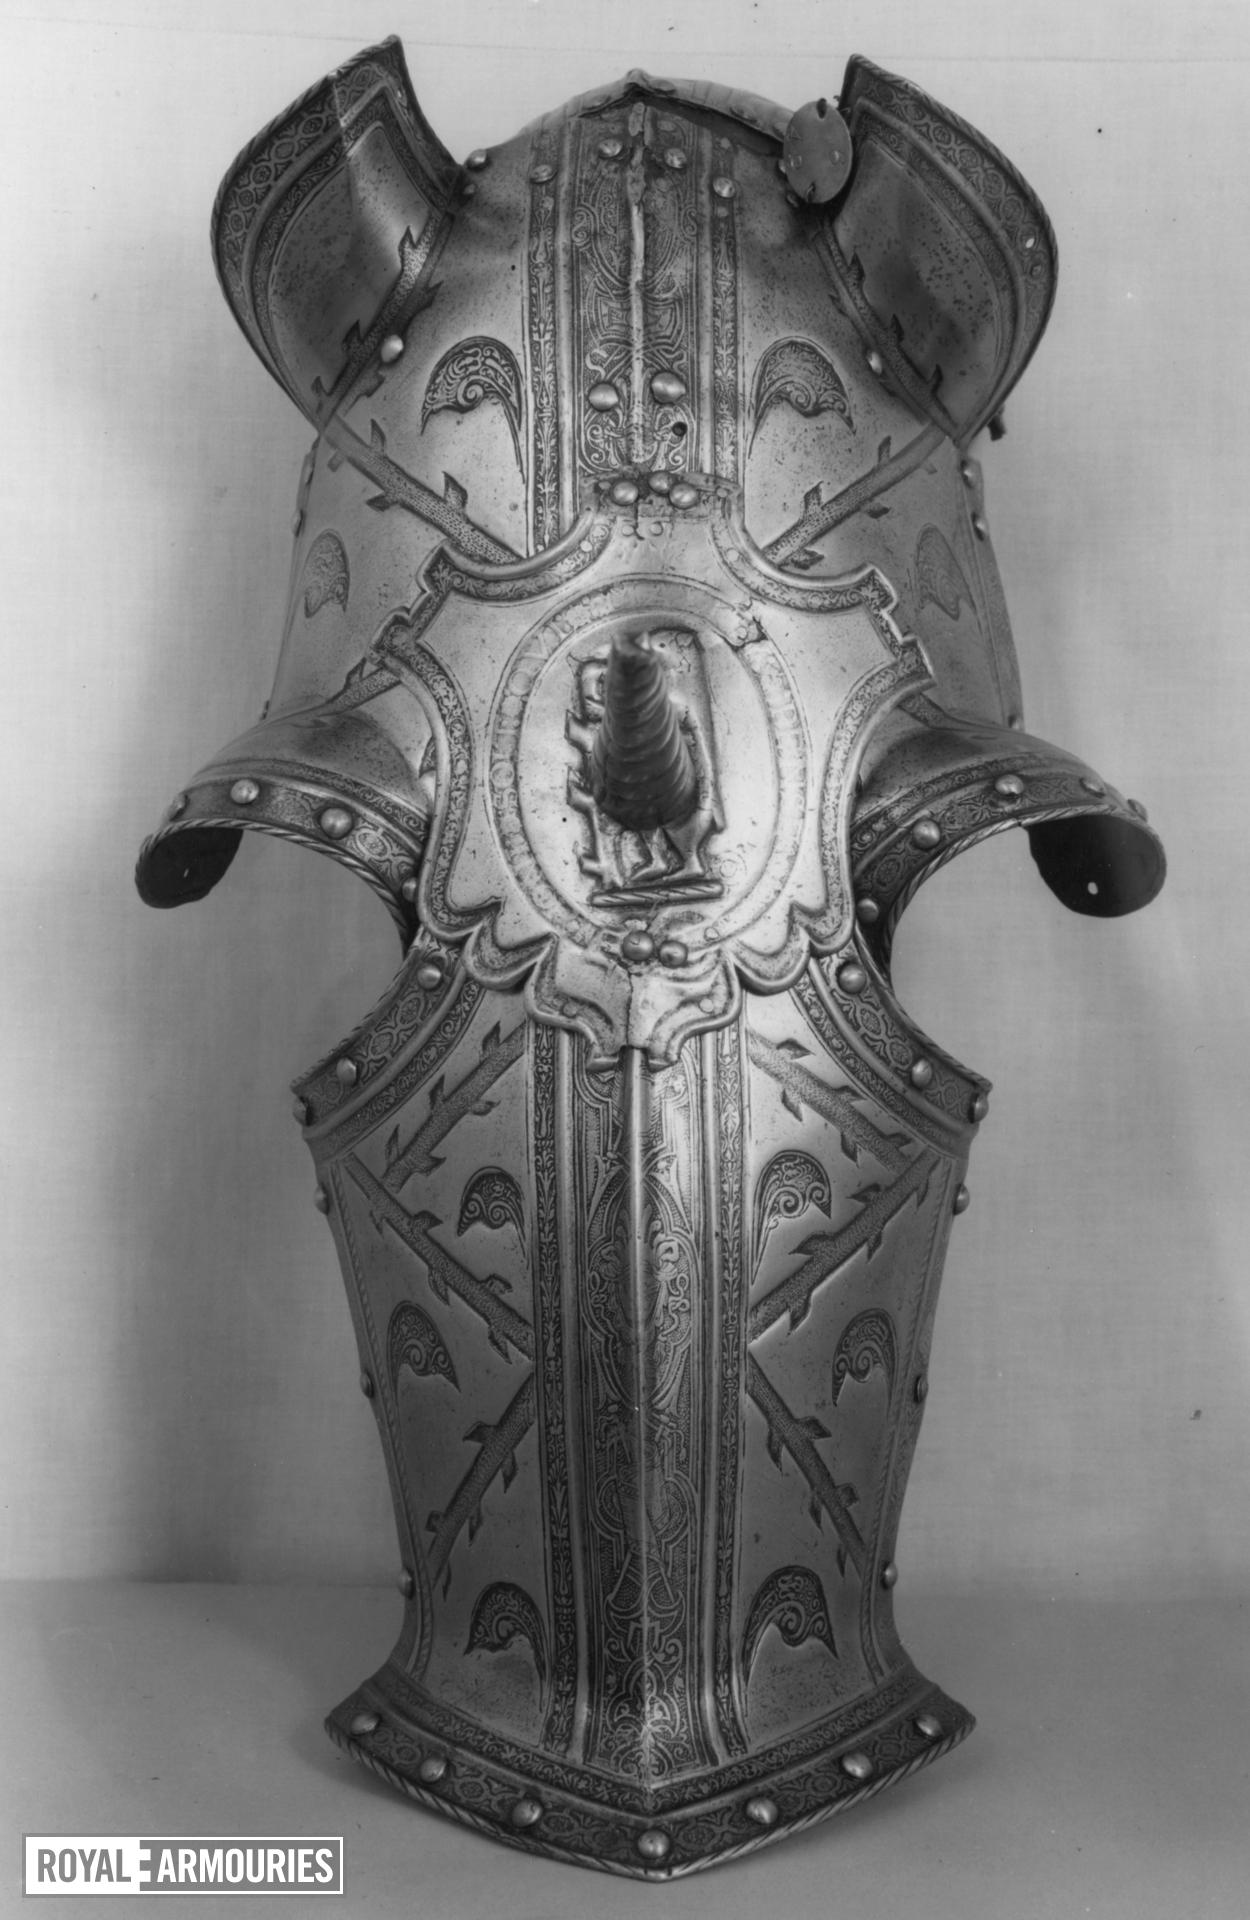 Shaffron From the armour of Robert Dudley, Earl of Leicester, II.81.